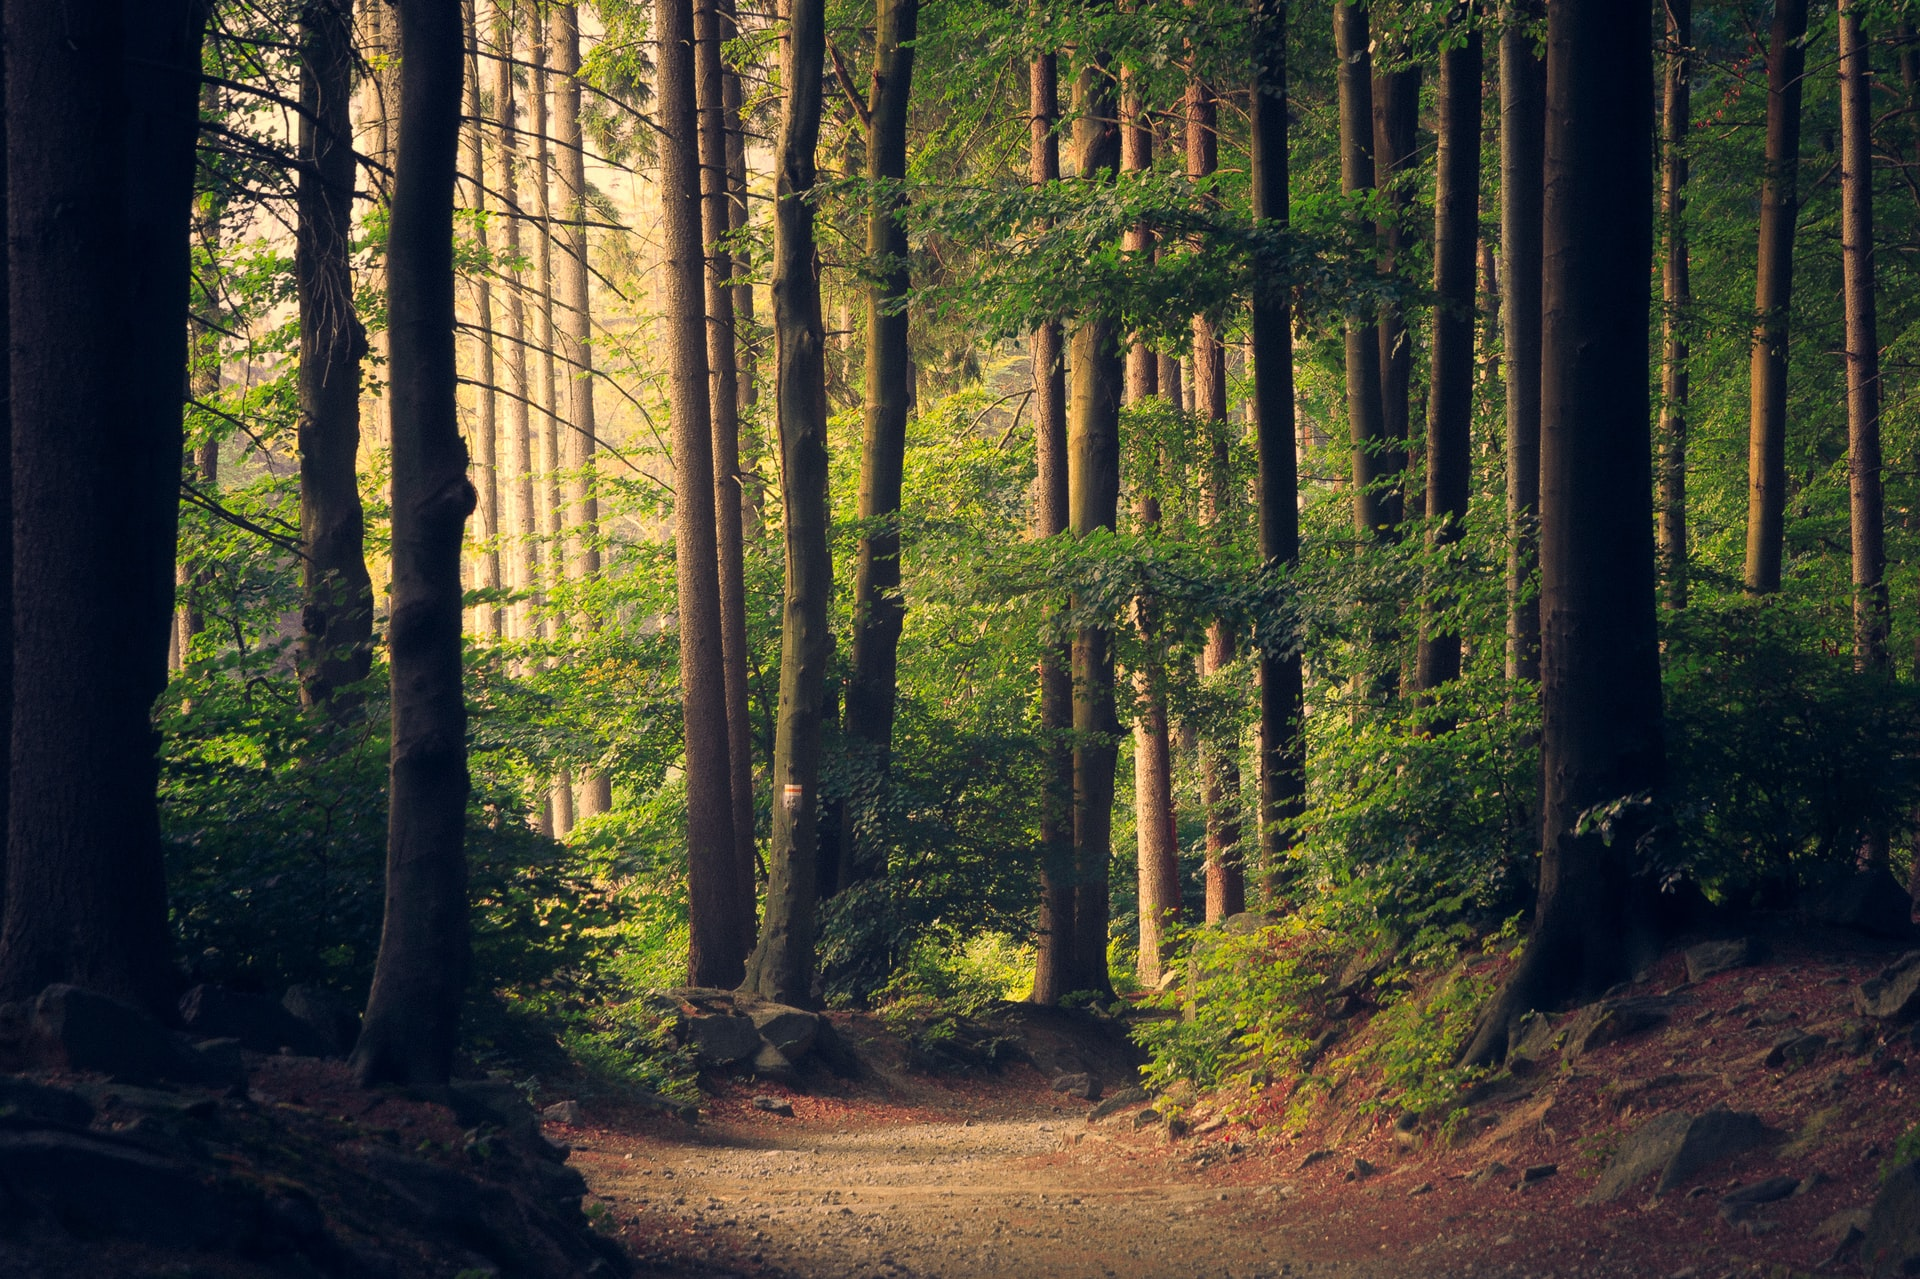 Trees in the forest and carbon sequestration